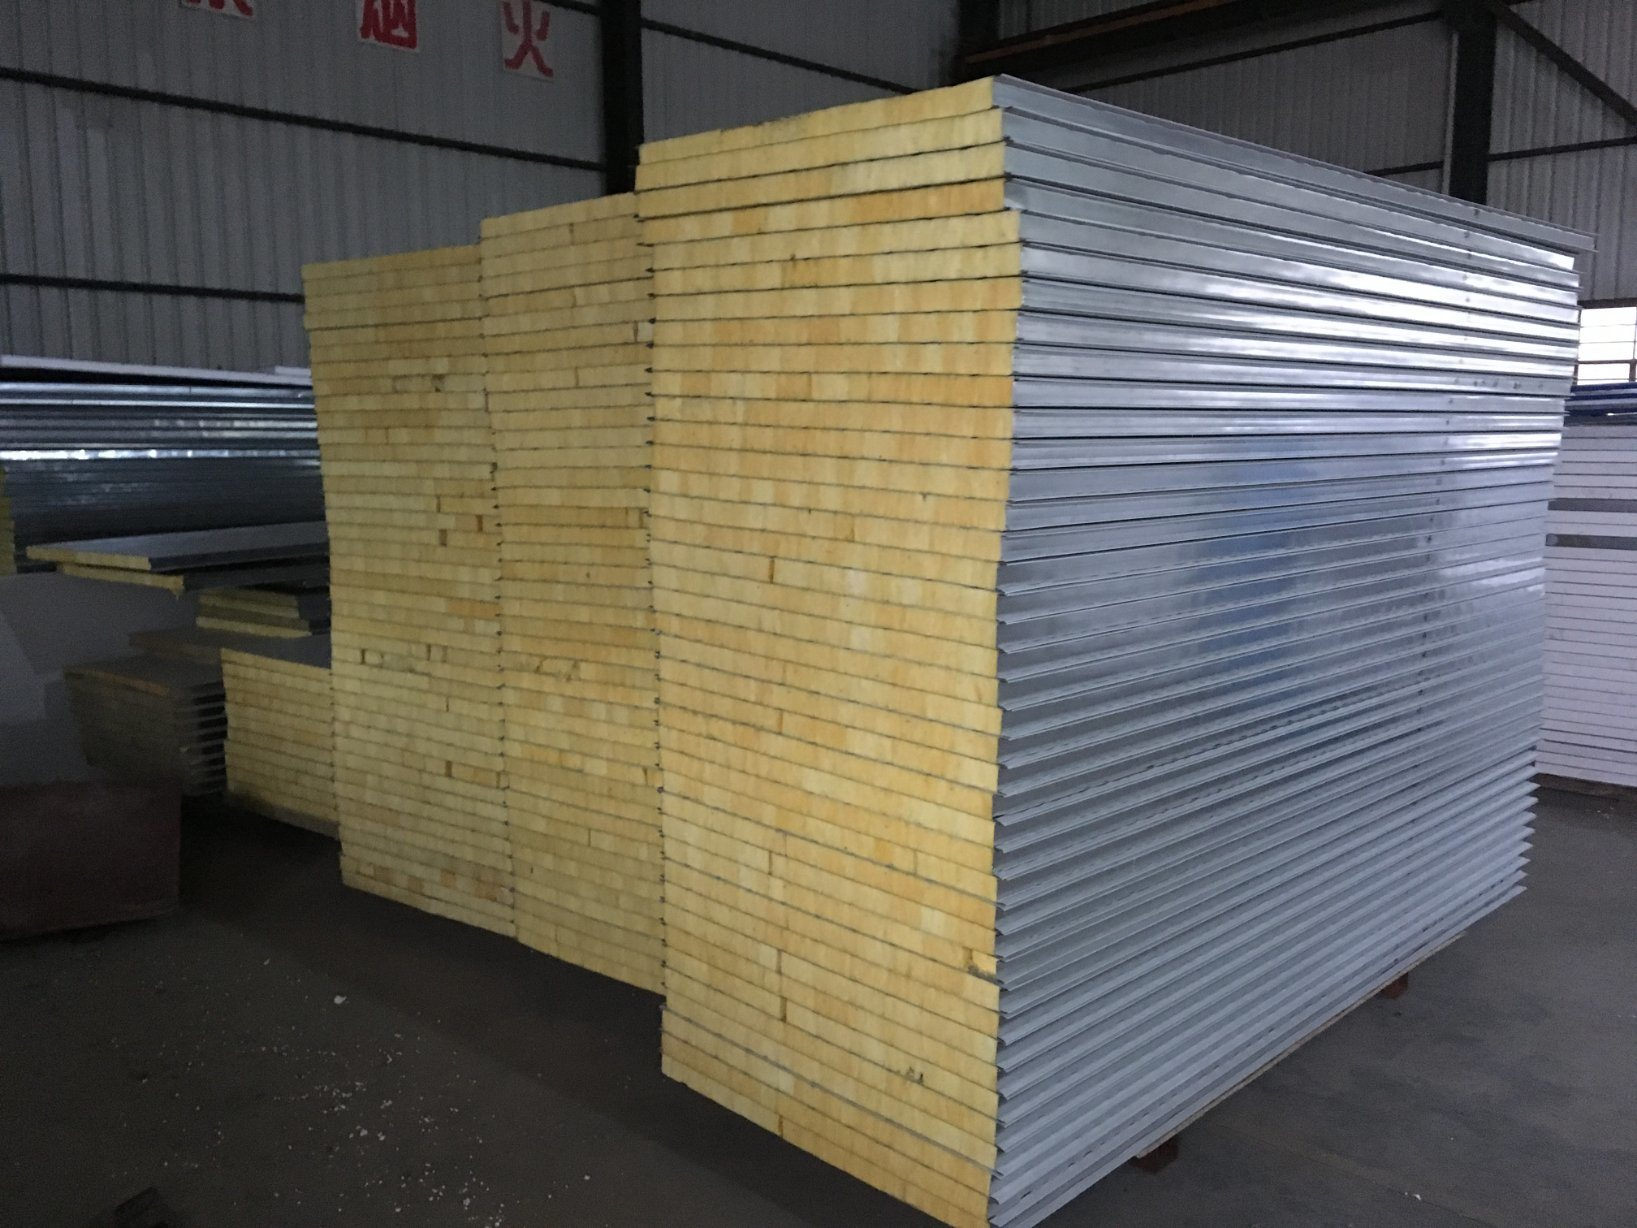 China Manufactory Prefabricated Eps Rockwool Sandwich Wall Panel Photos Pictures Made In China Com